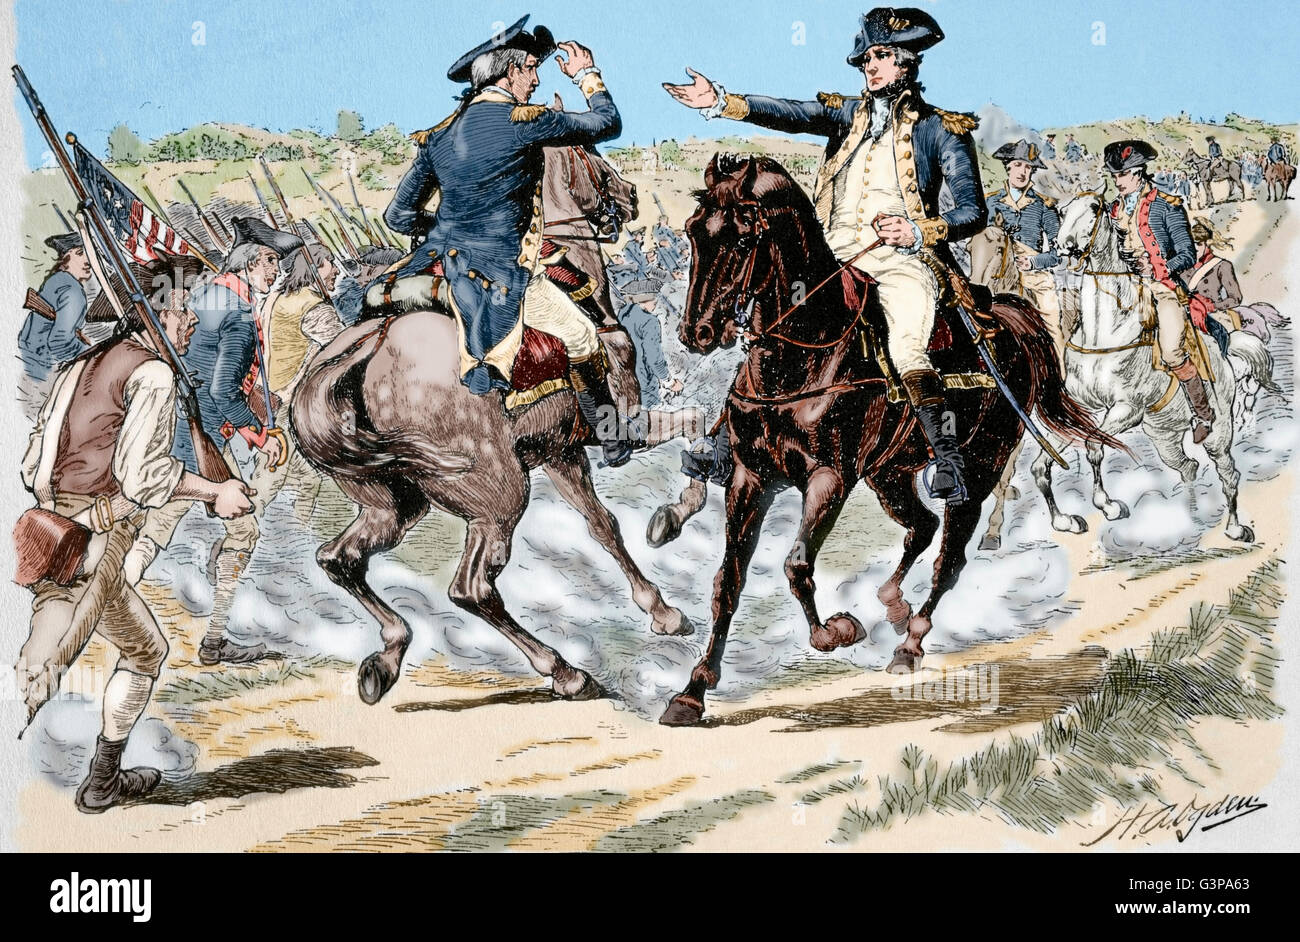 American Revolutionary War (1775-1783). Charles Lee (1732-1782), General of the Continental Army and George Washington - Stock Image